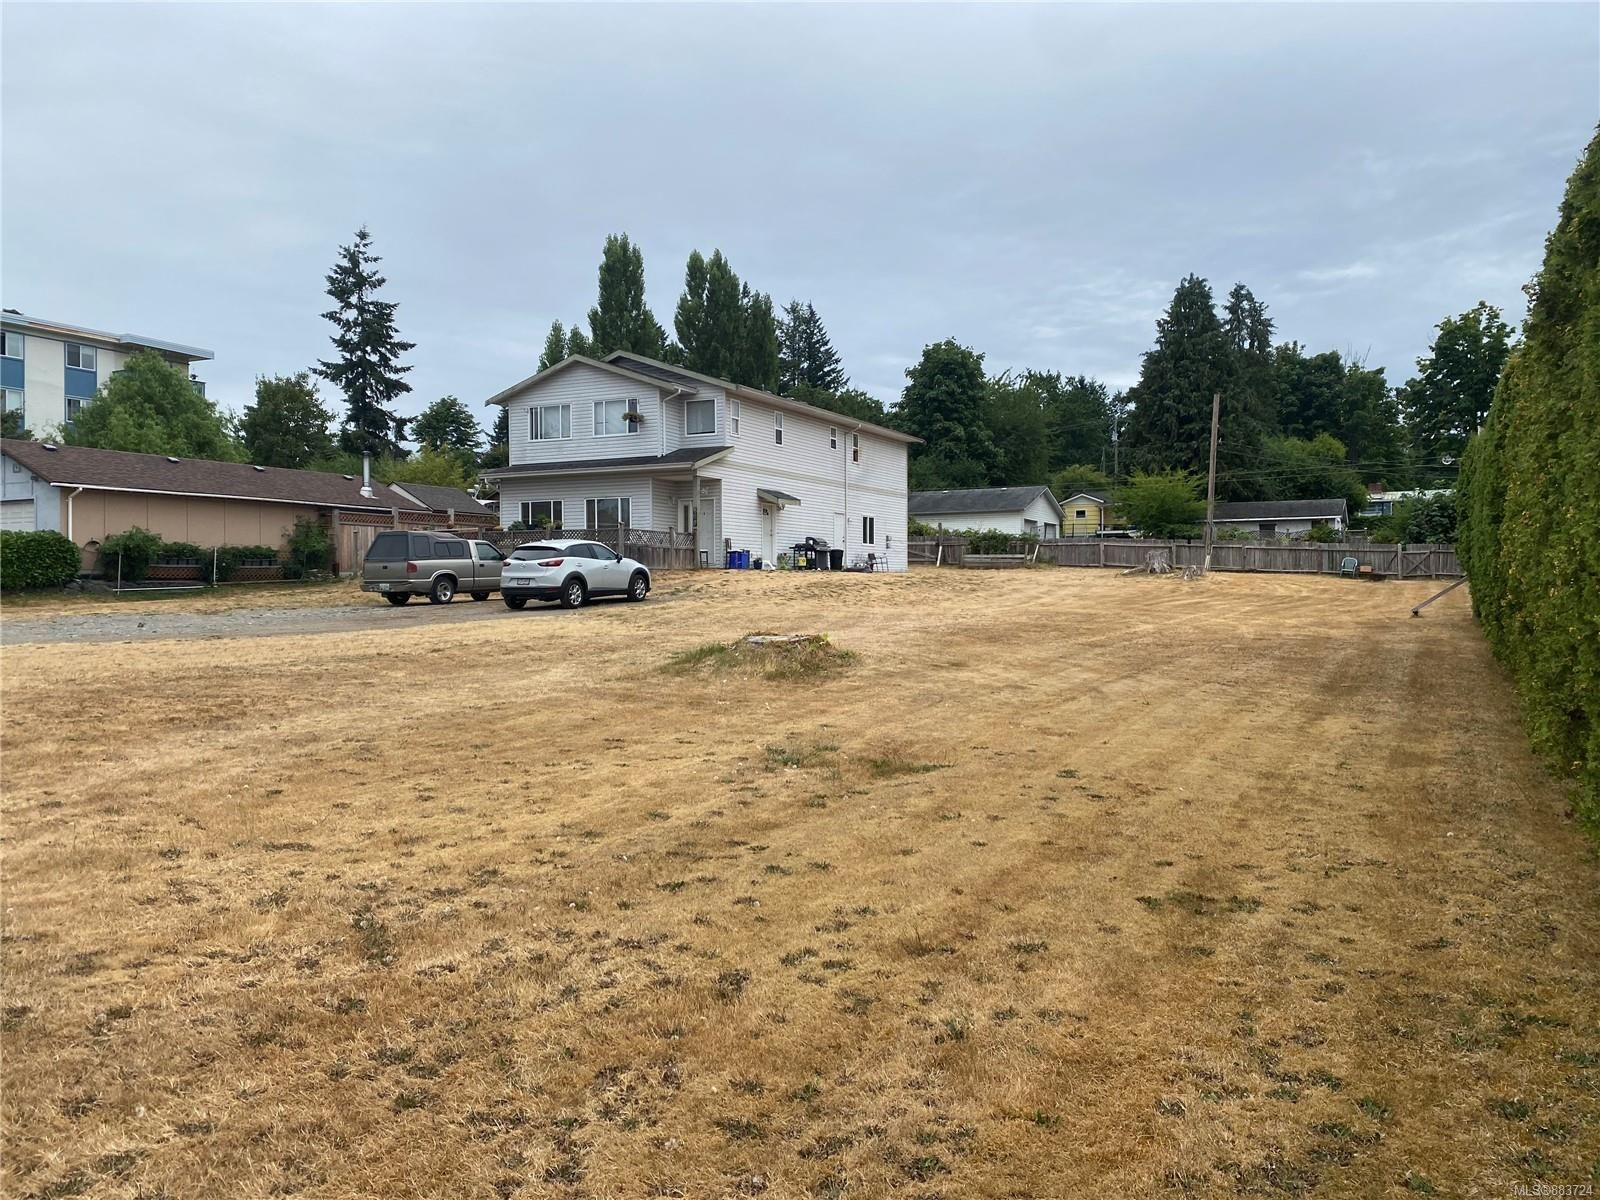 Main Photo: 859 9th Ave in : CR Campbell River Central Multi Family for sale (Campbell River)  : MLS®# 883724